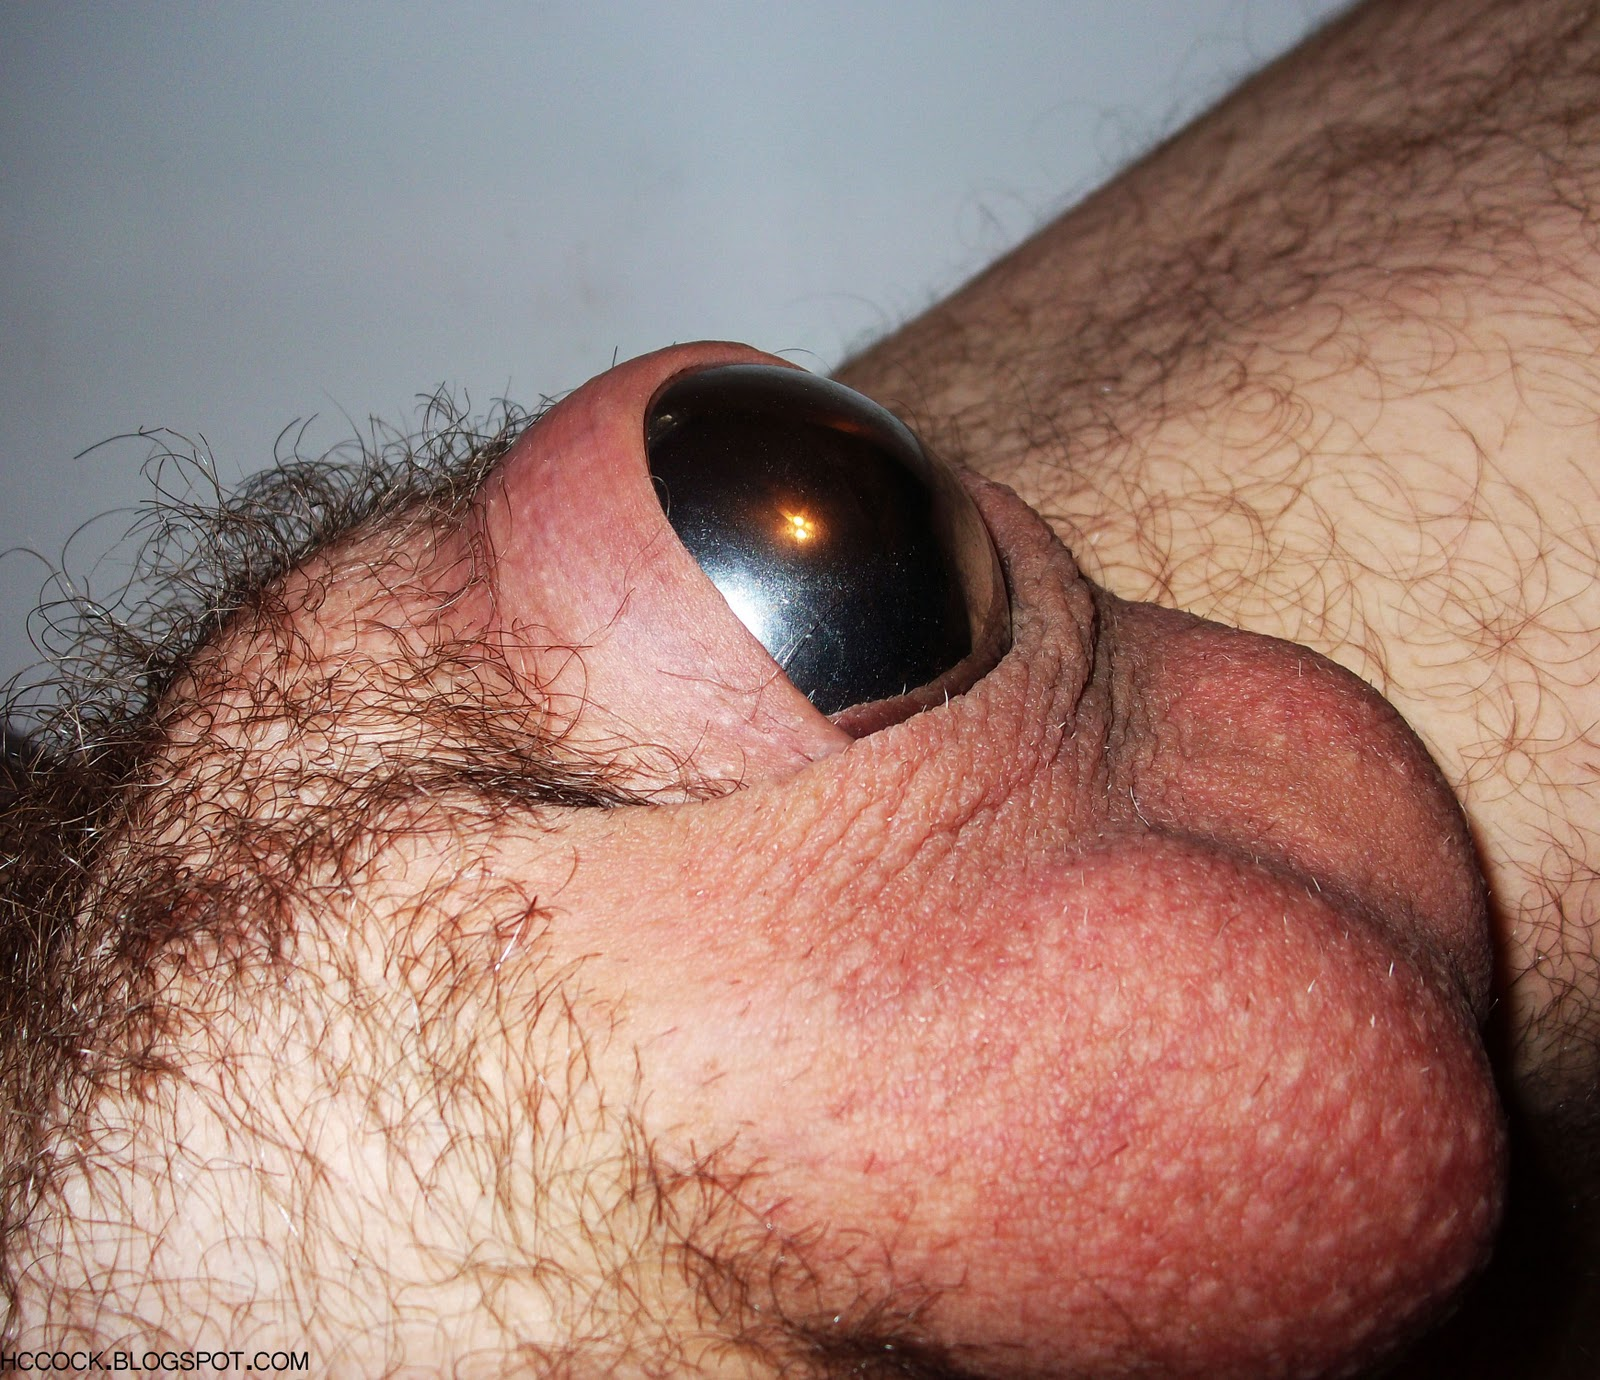 from Marcel docking foreskin gay